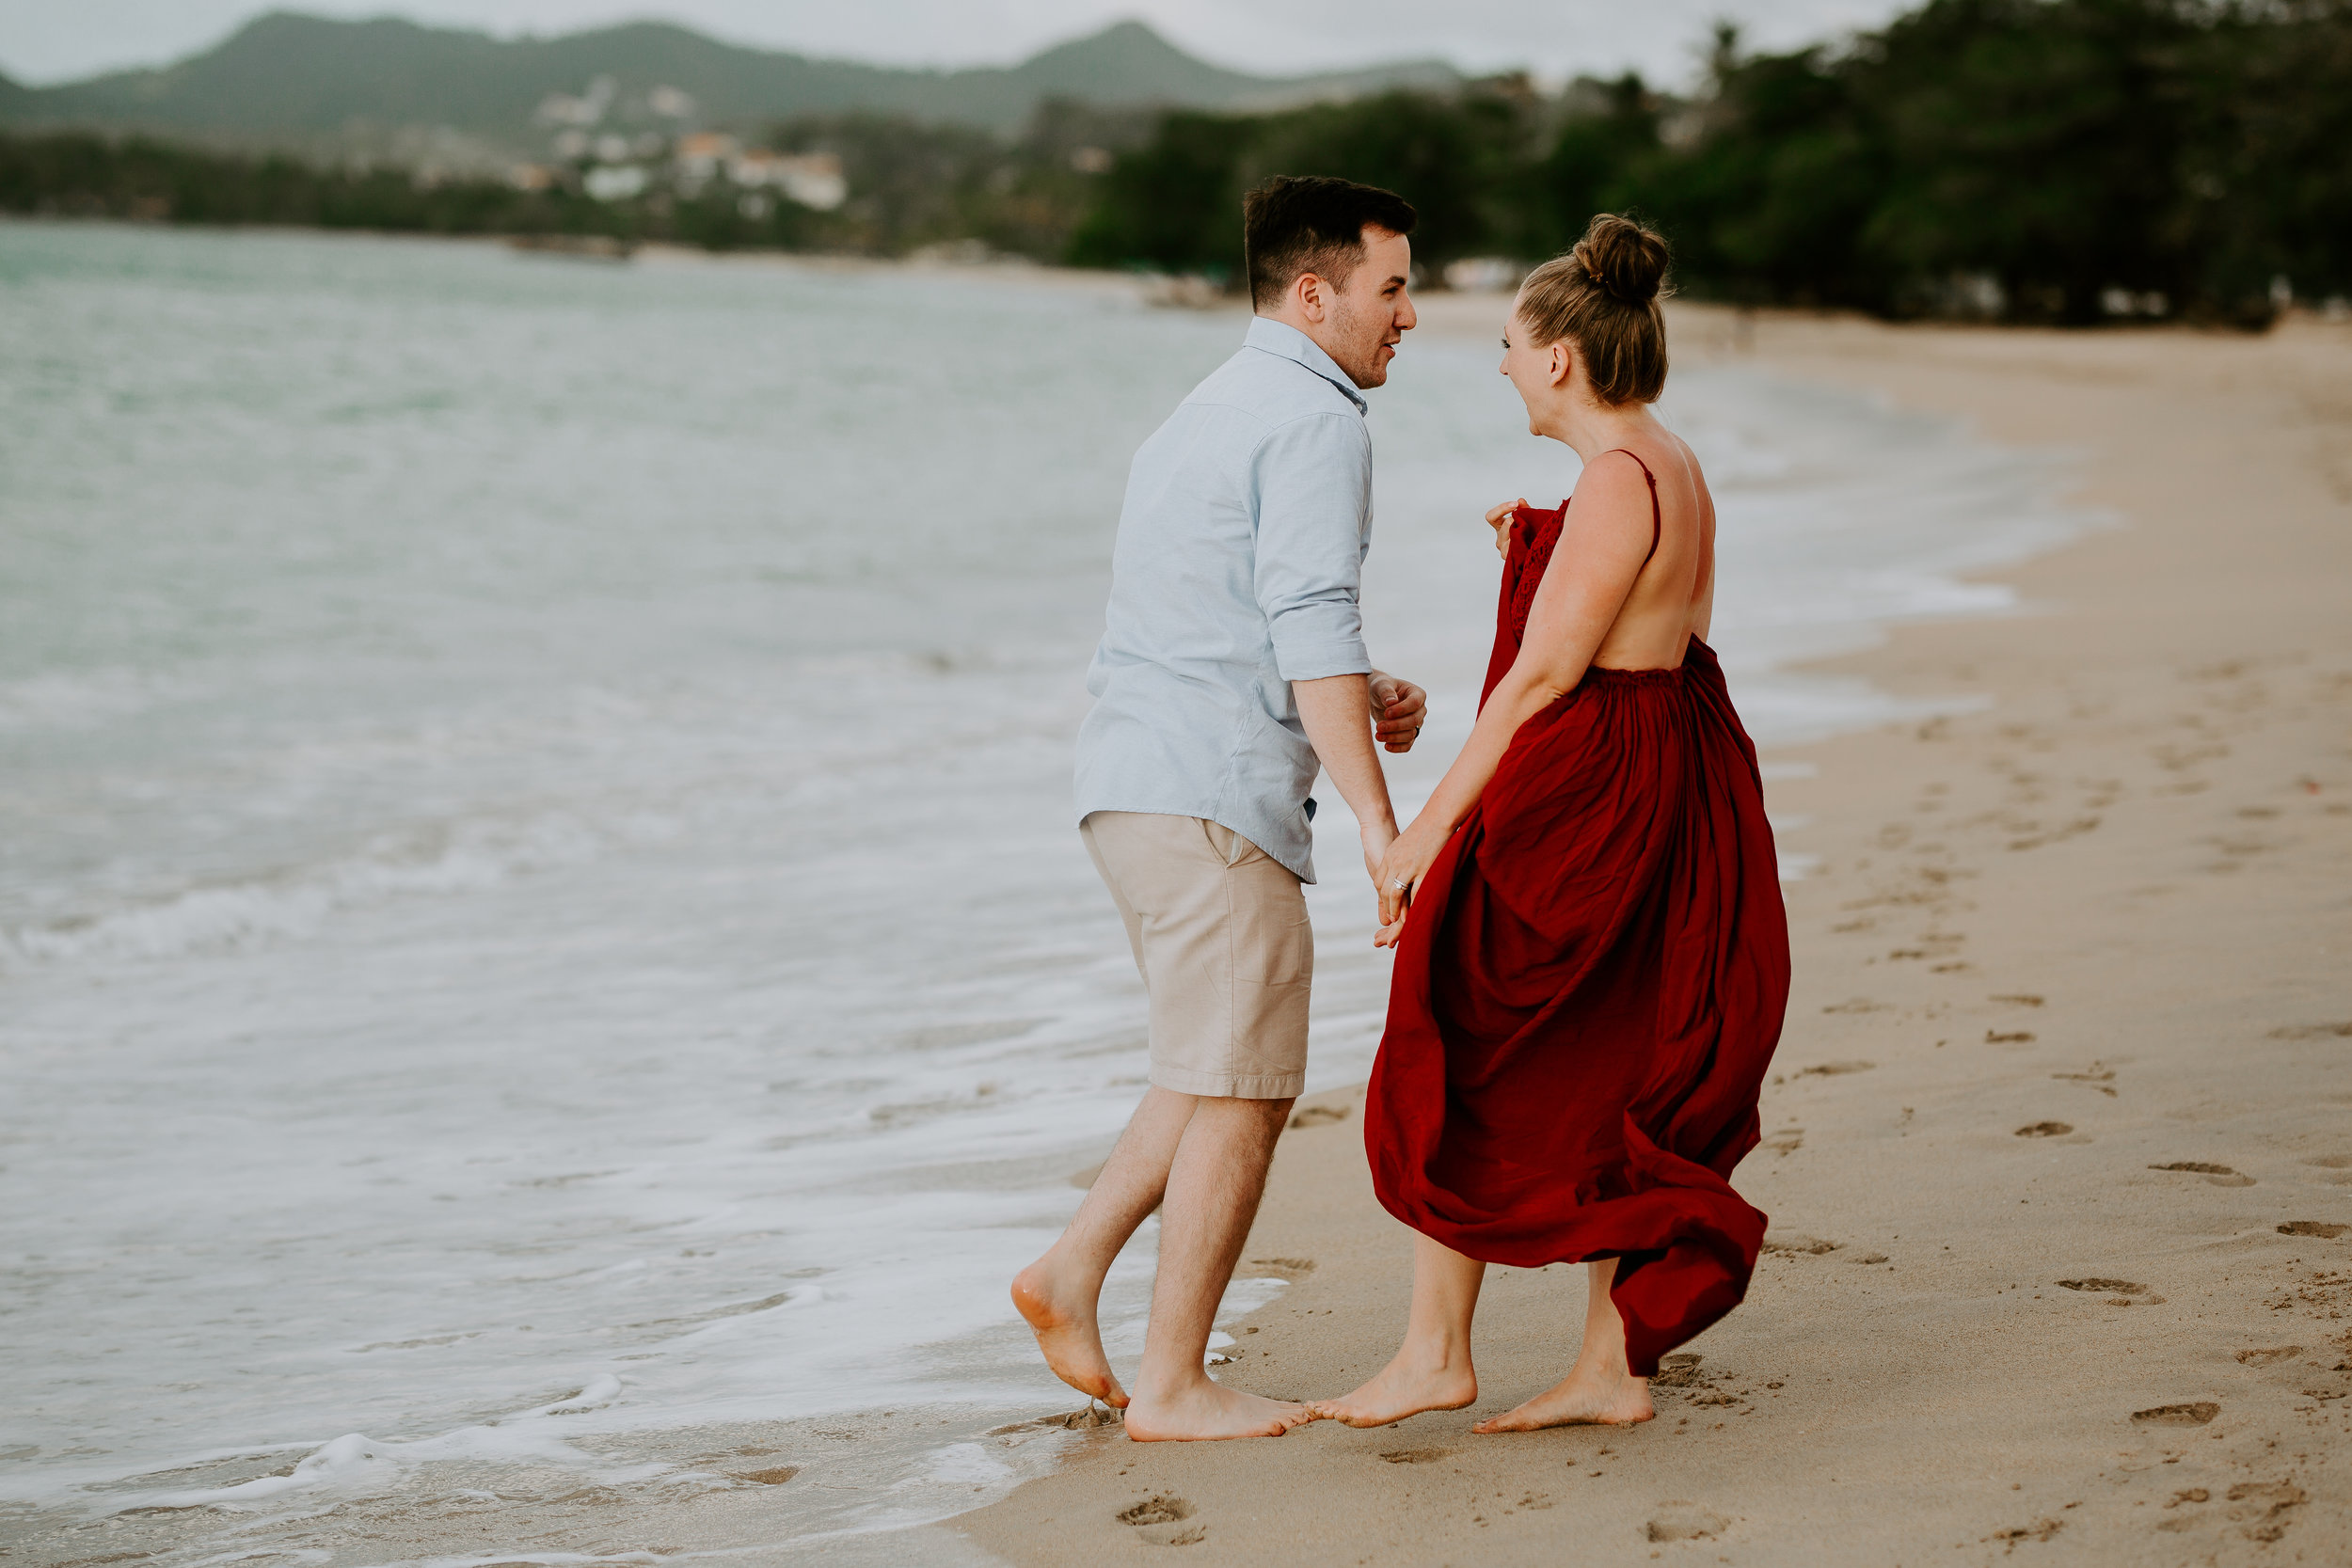 nicole-daacke-photography-adventurous-elopement-traveling-destination-wedding-photographer-national-park-engagement-sessions-.jpg